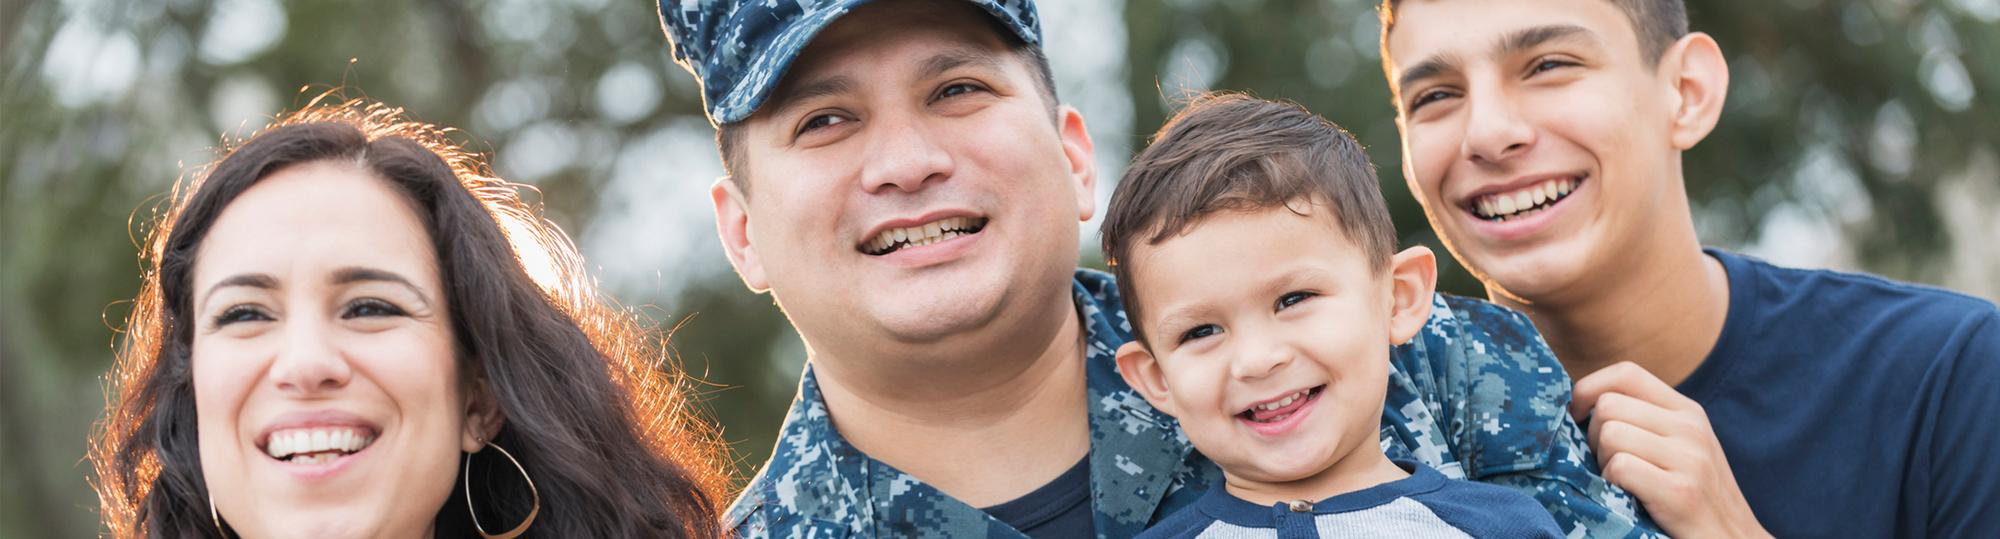 Veterans Advantage About Military Family